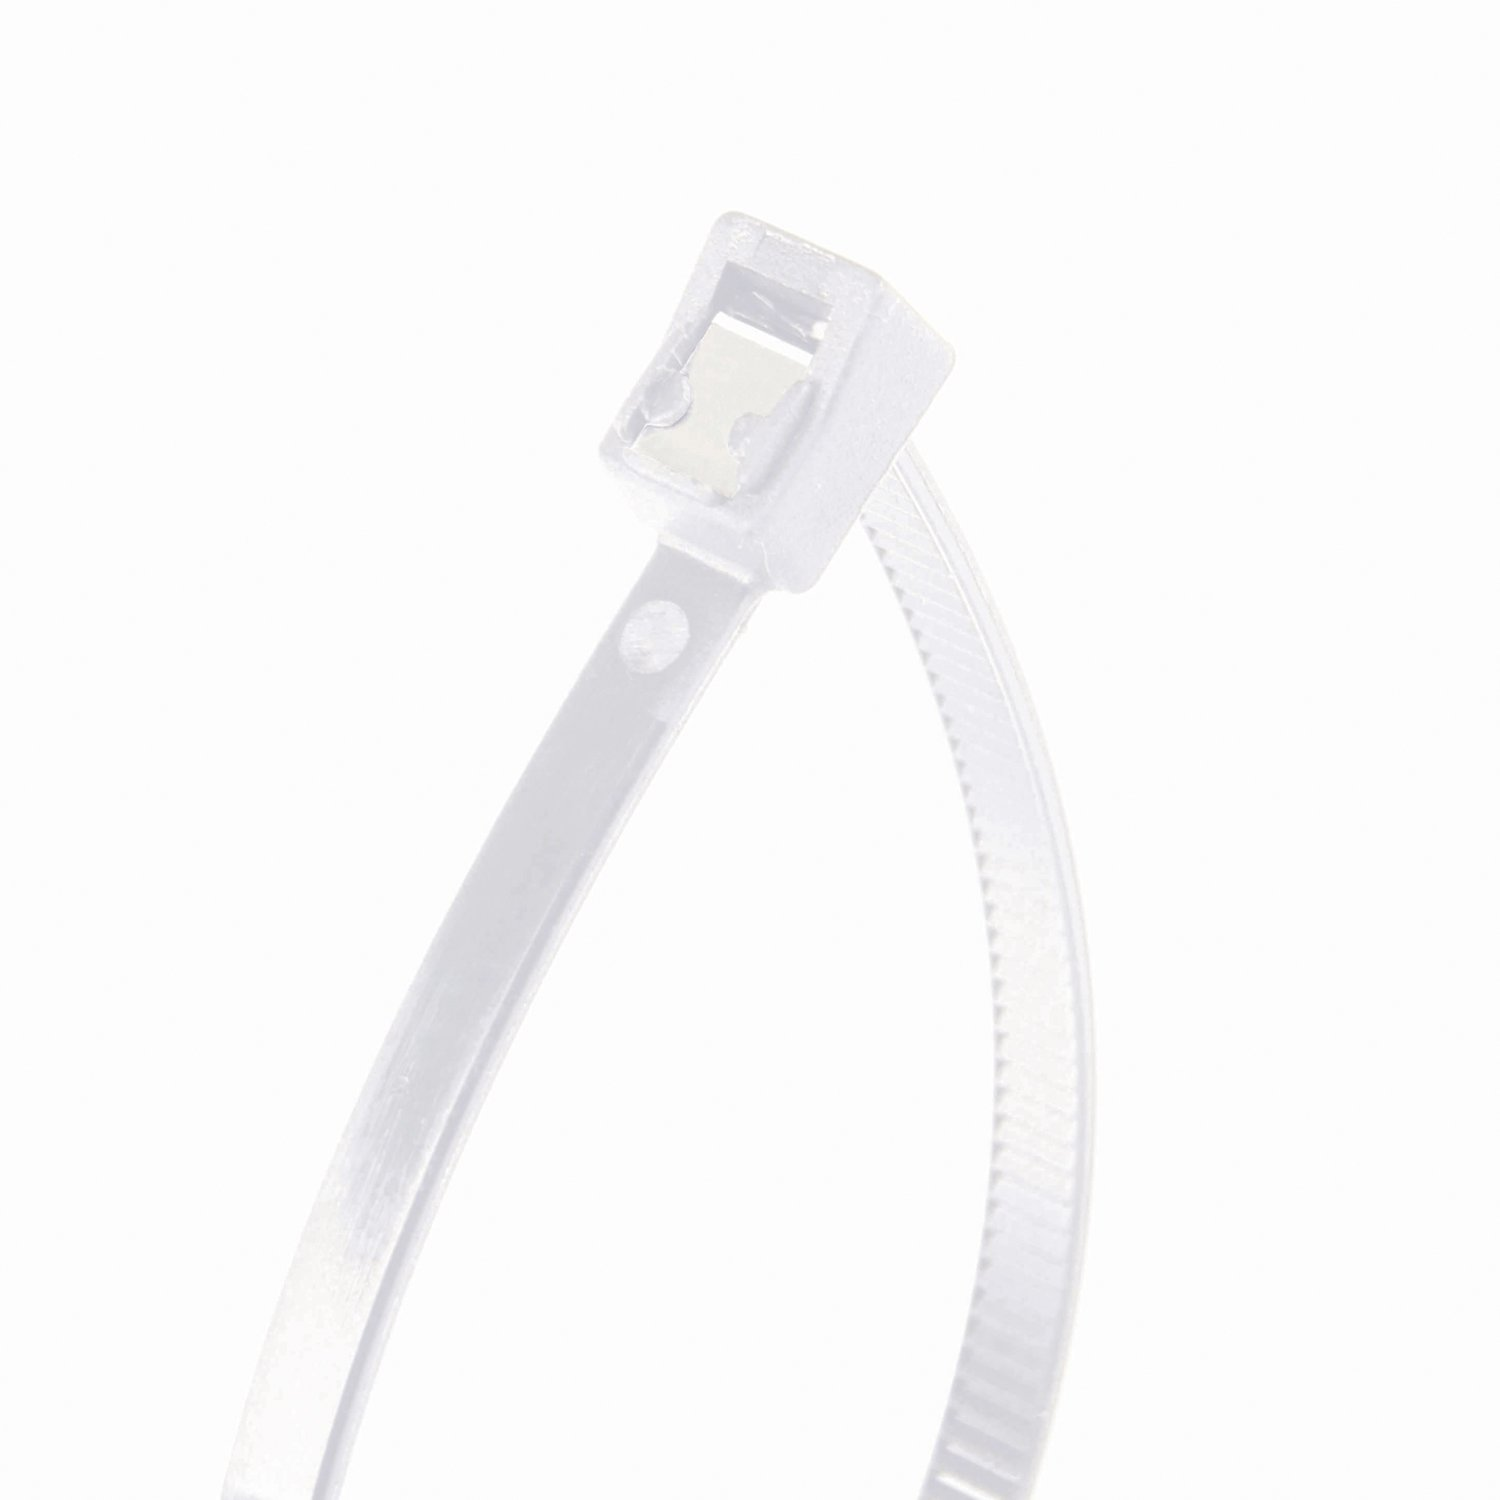 Gardner Bender 46-308UVBSC Nylon Self-Cutting Cable Tie, 14 Inch, 50 lb. Tensile Strength, Twist-Off, Stainless Steel Blade, Wire Tie/Industrial/Outdoor & Household Use, Zip Tie, 50 Pk, Natural White